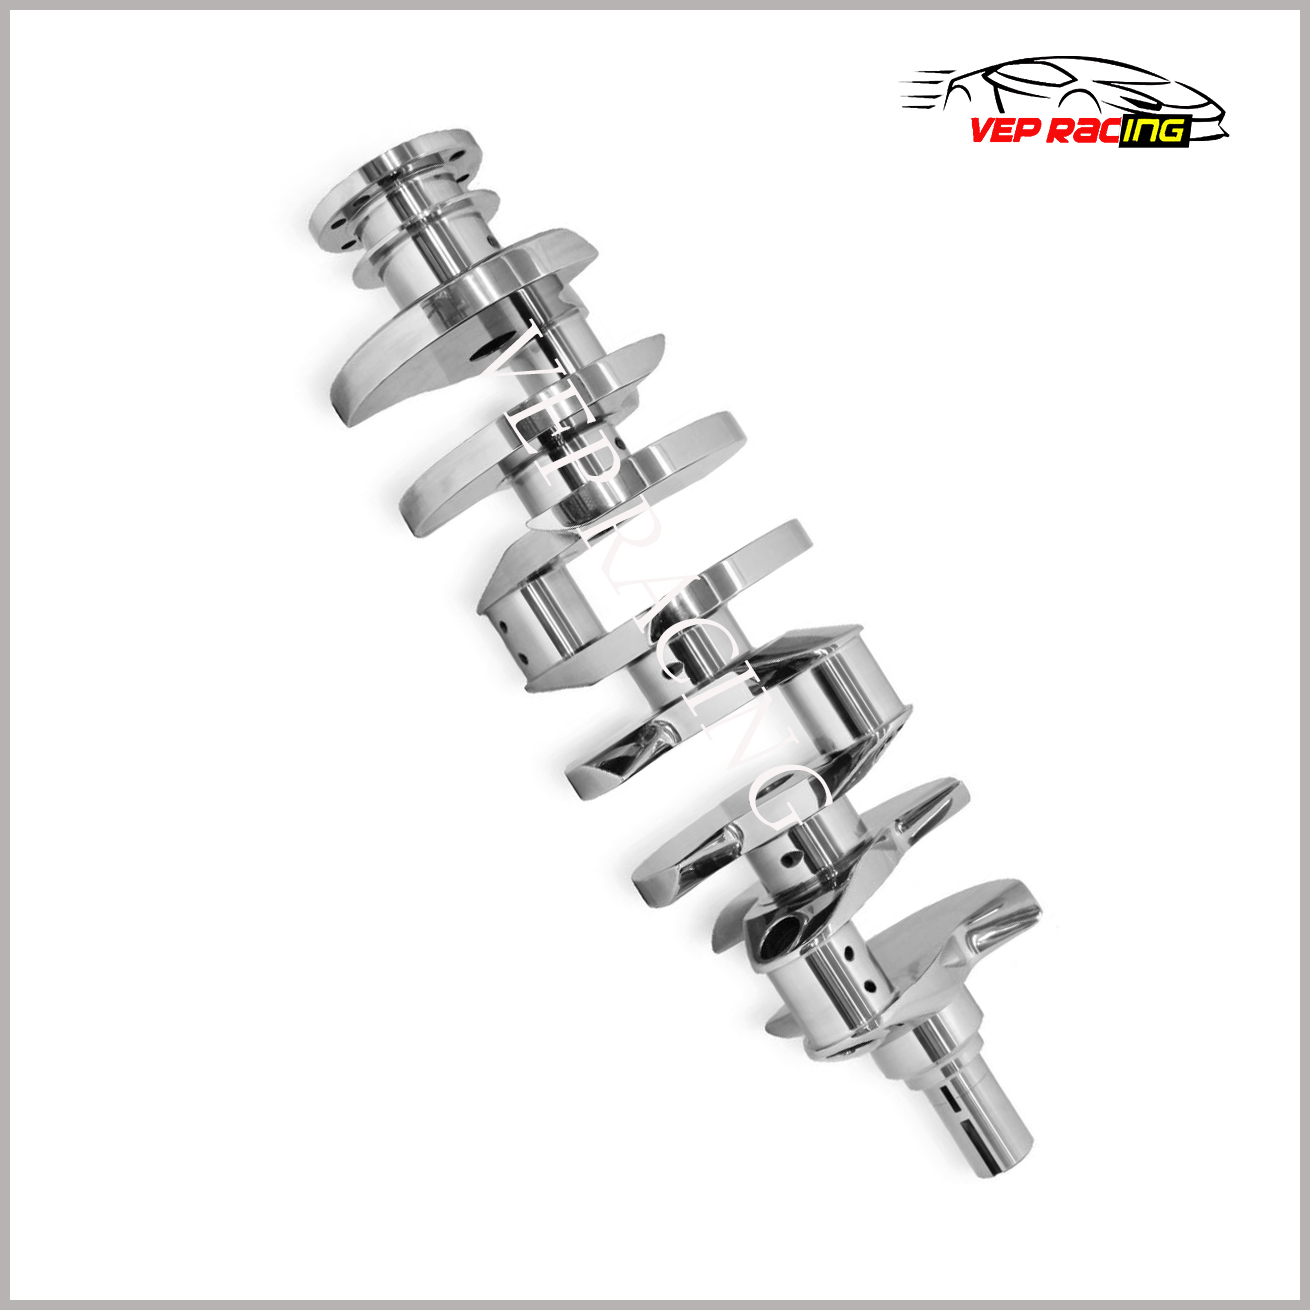 86MM Stroke TOYOTA 1AZ forged billet racing crankshaft